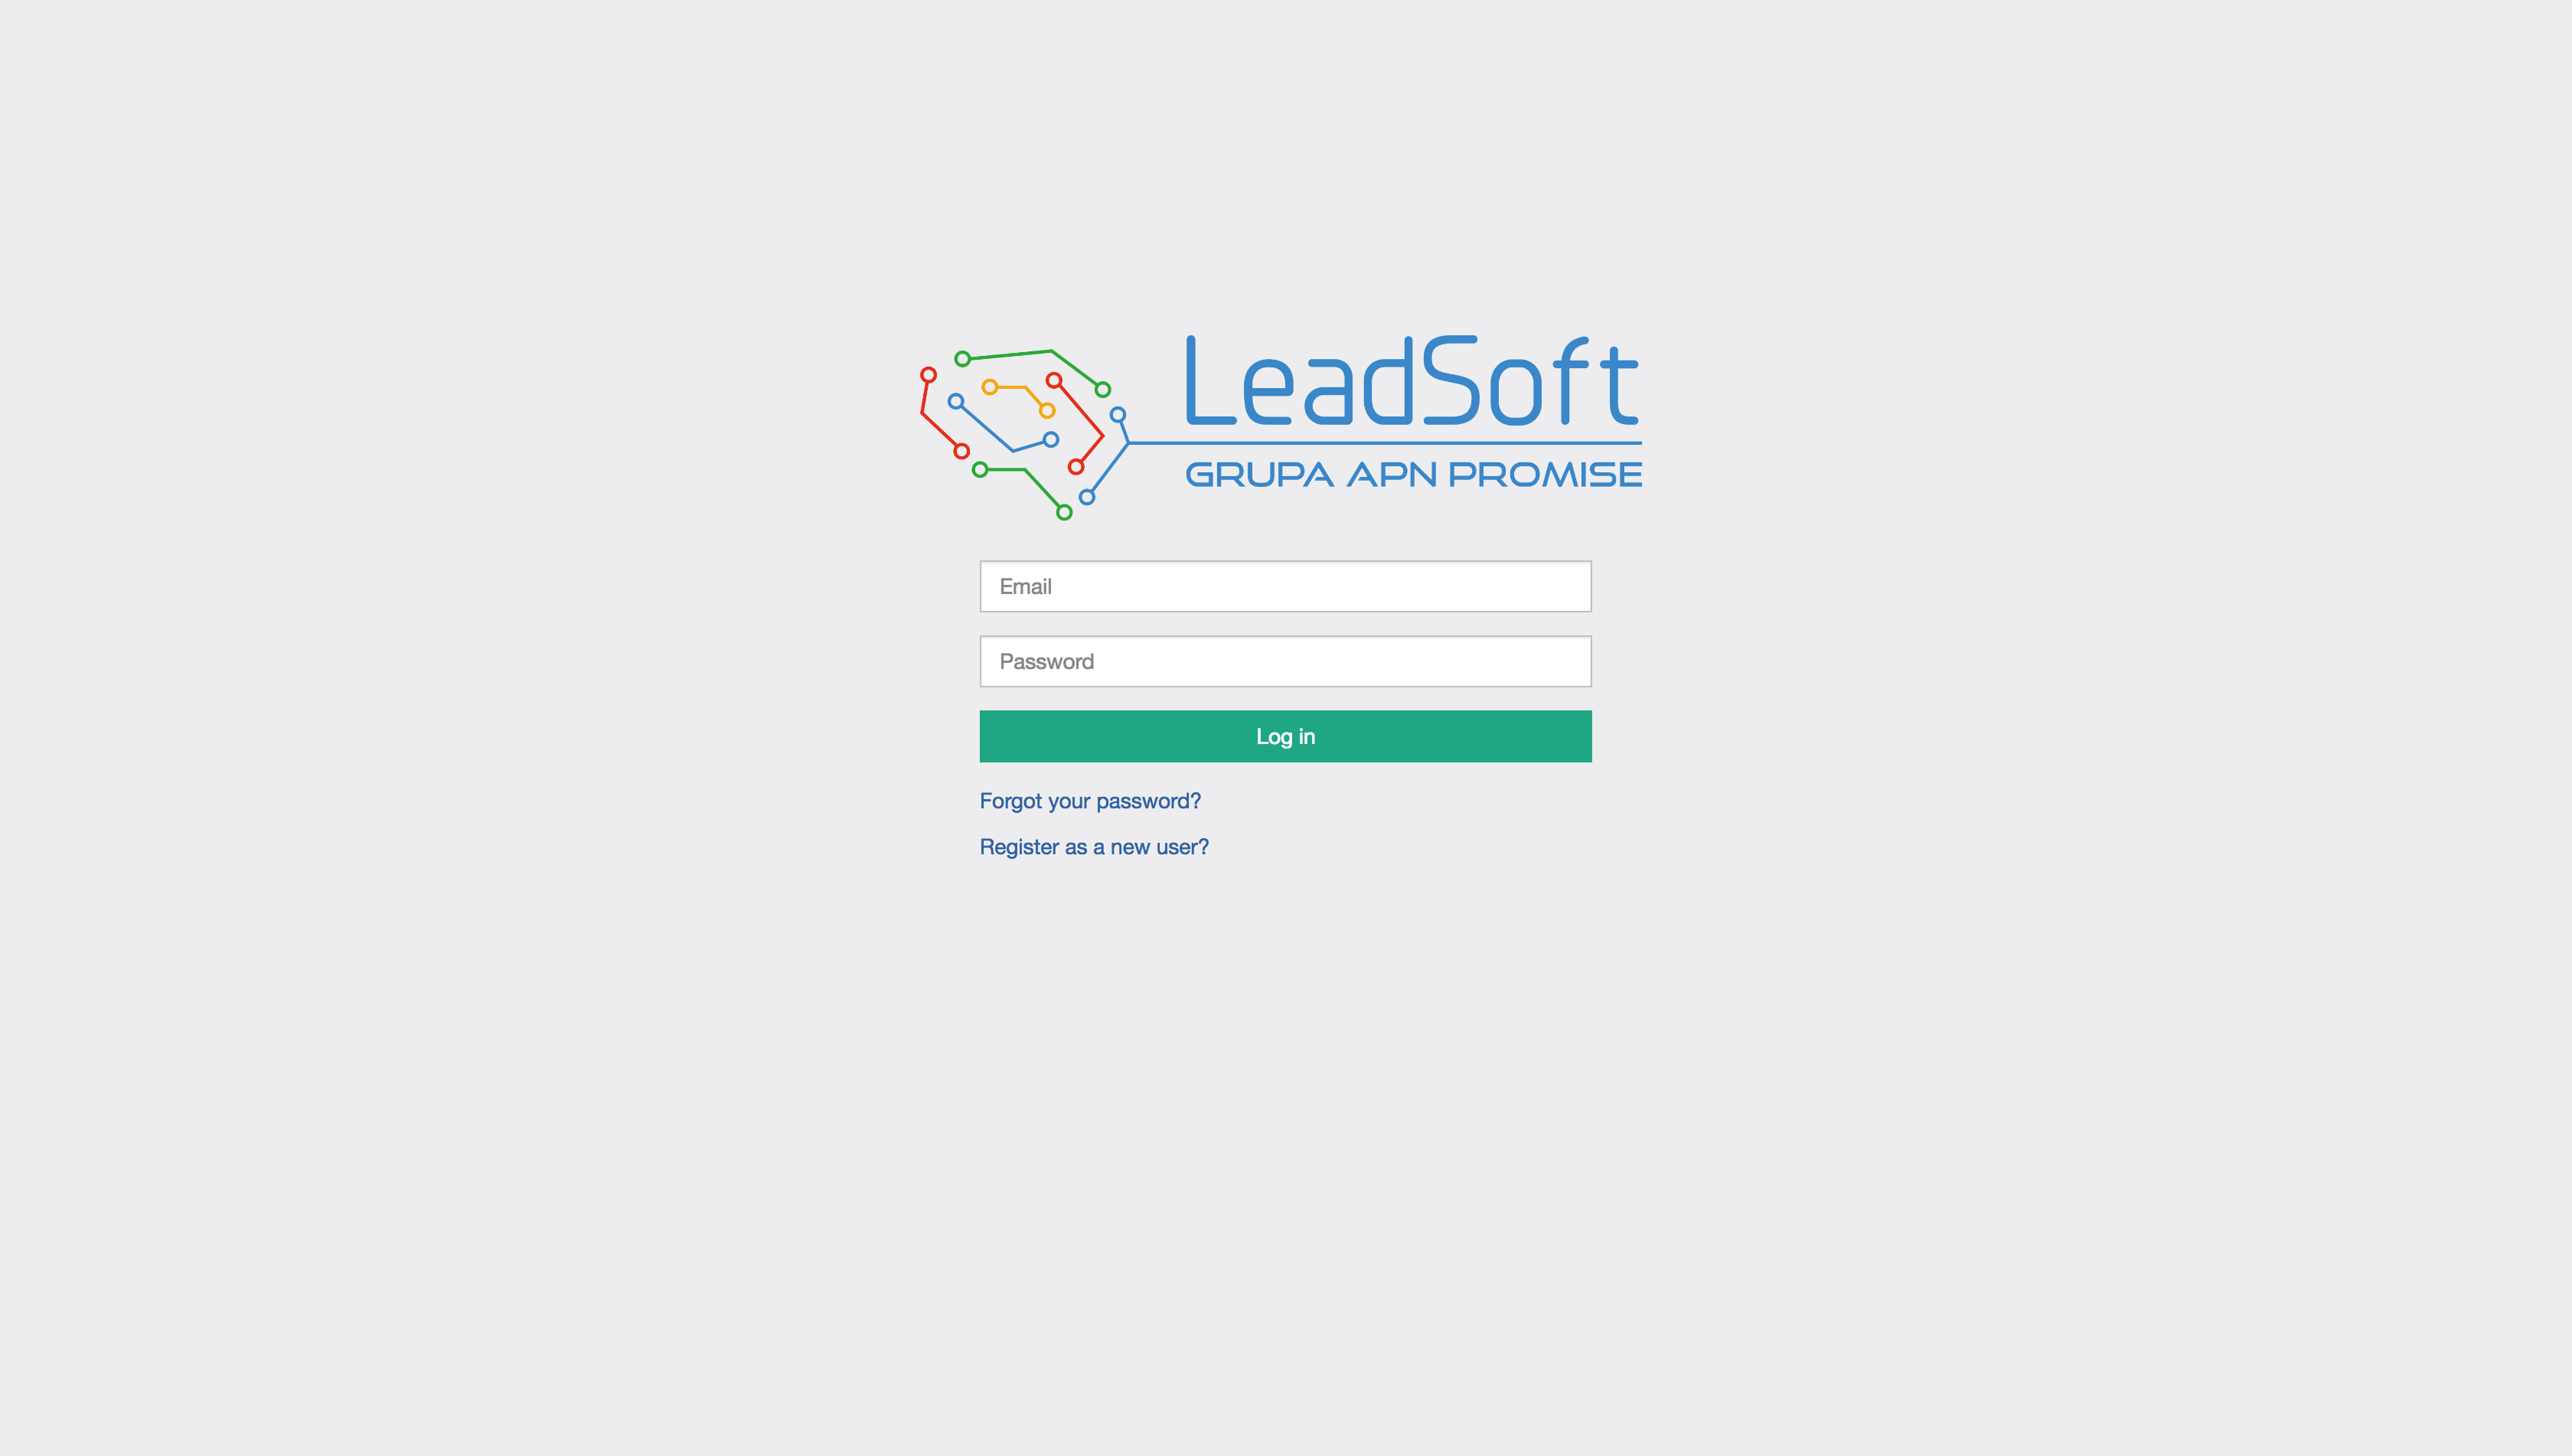 LeadSoft login